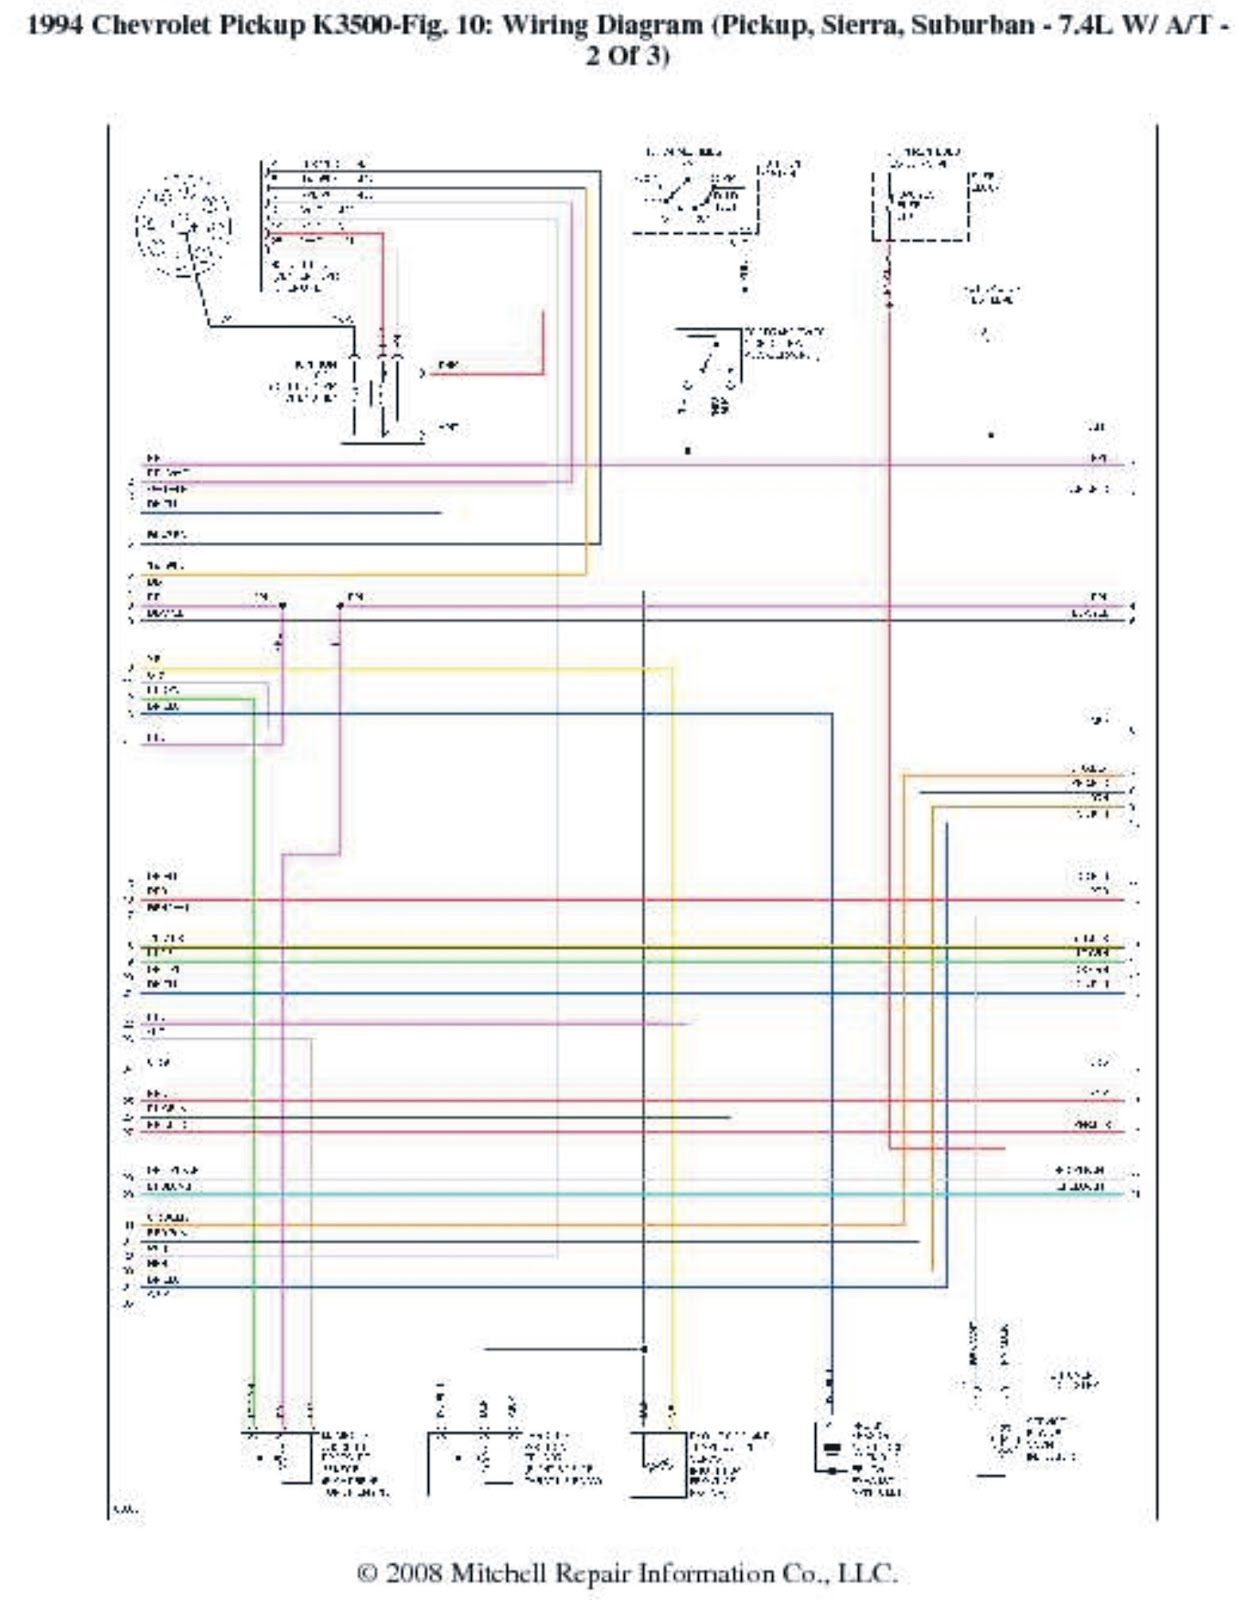 1994+chevrolet+pick+up+K3500 may 2011 wiring diagrams center 1982 chevy truck engine wiring diagram at alyssarenee.co